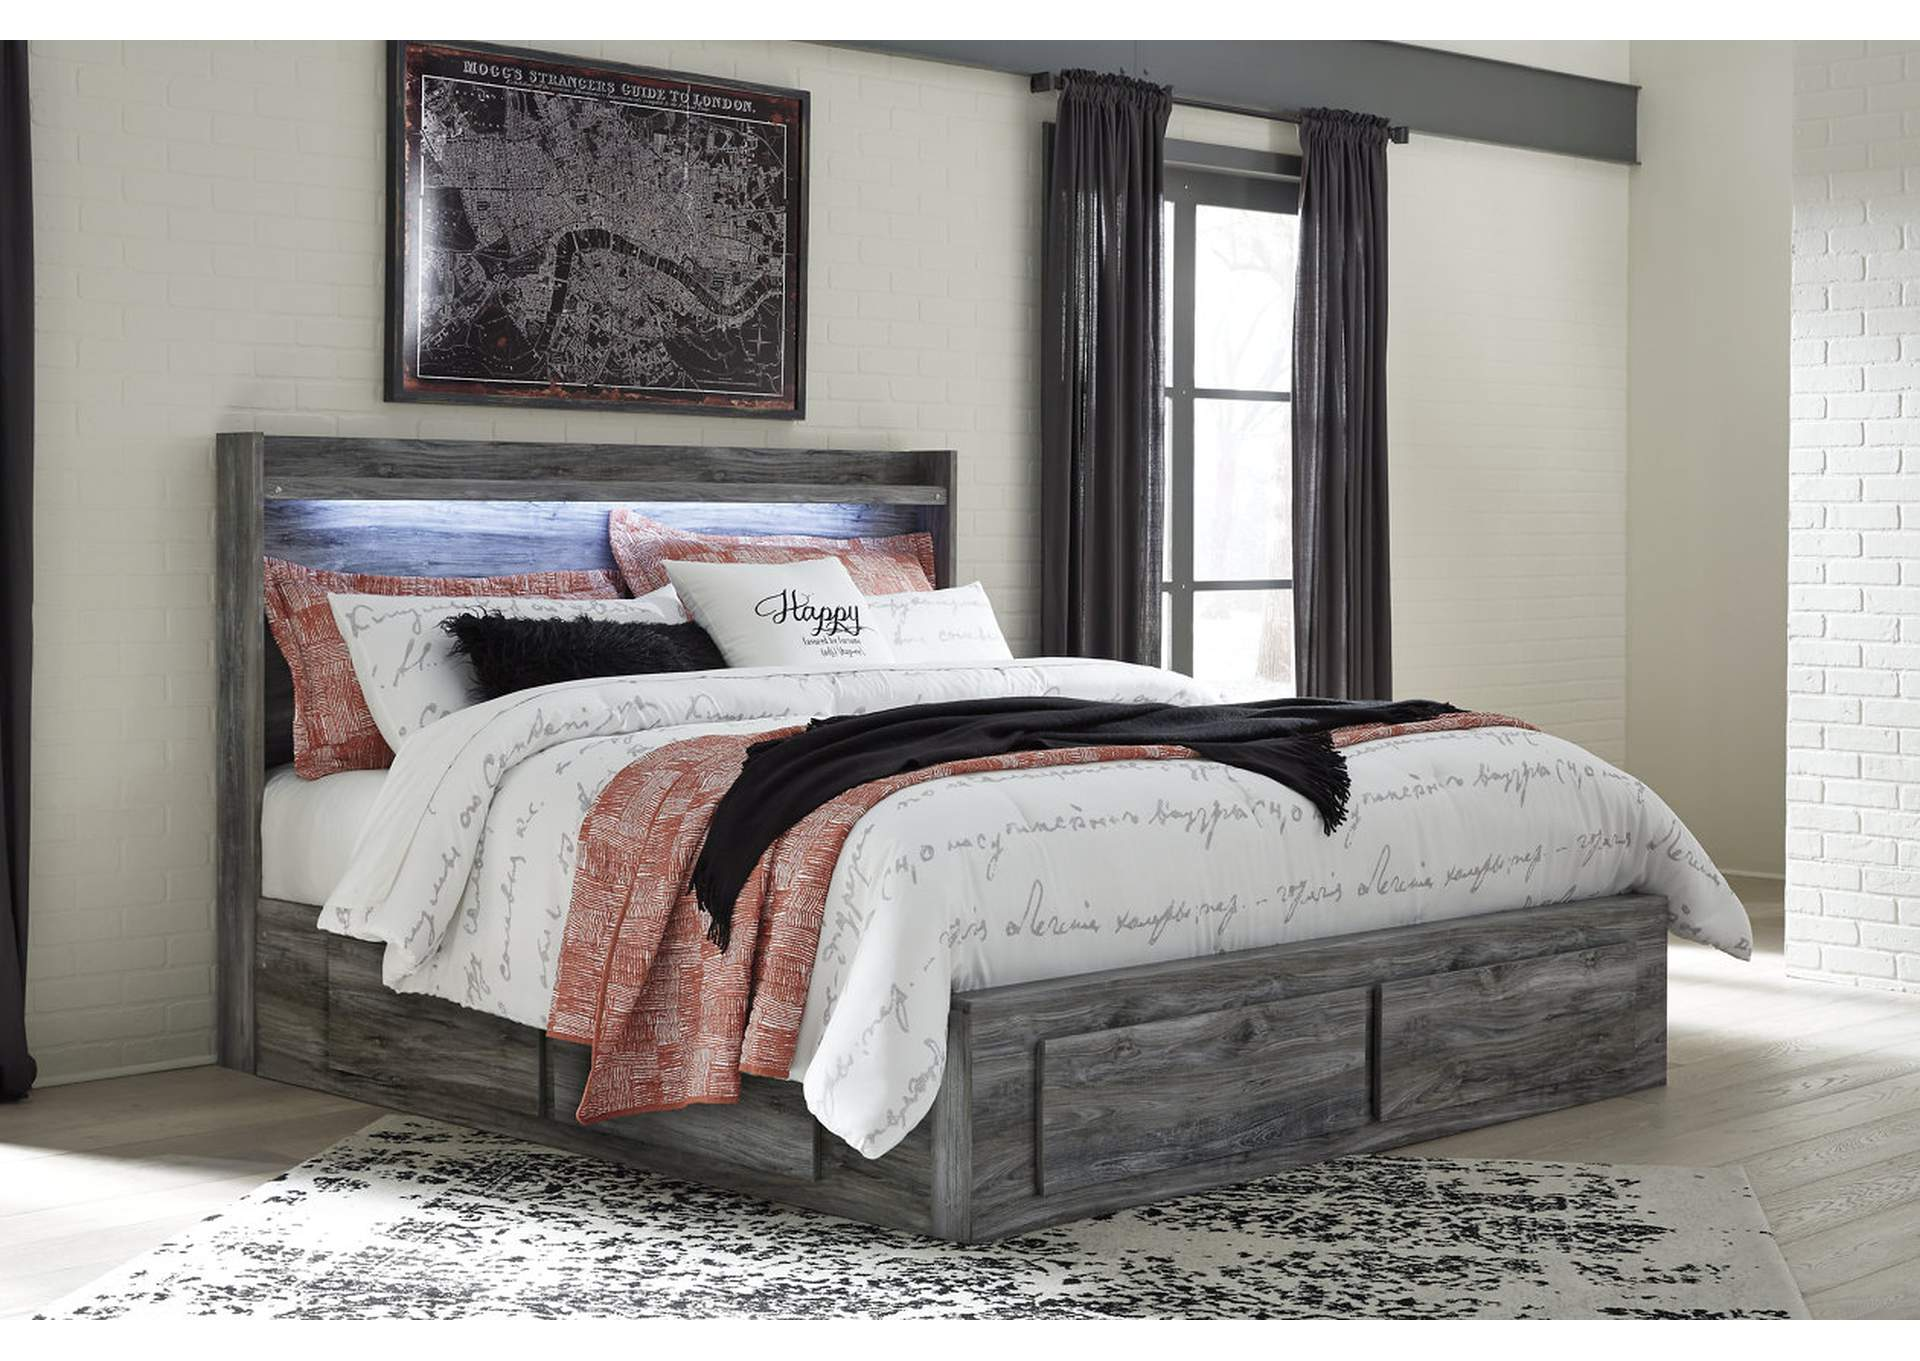 Baystorm Gray King Storage Bed,Signature Design By Ashley